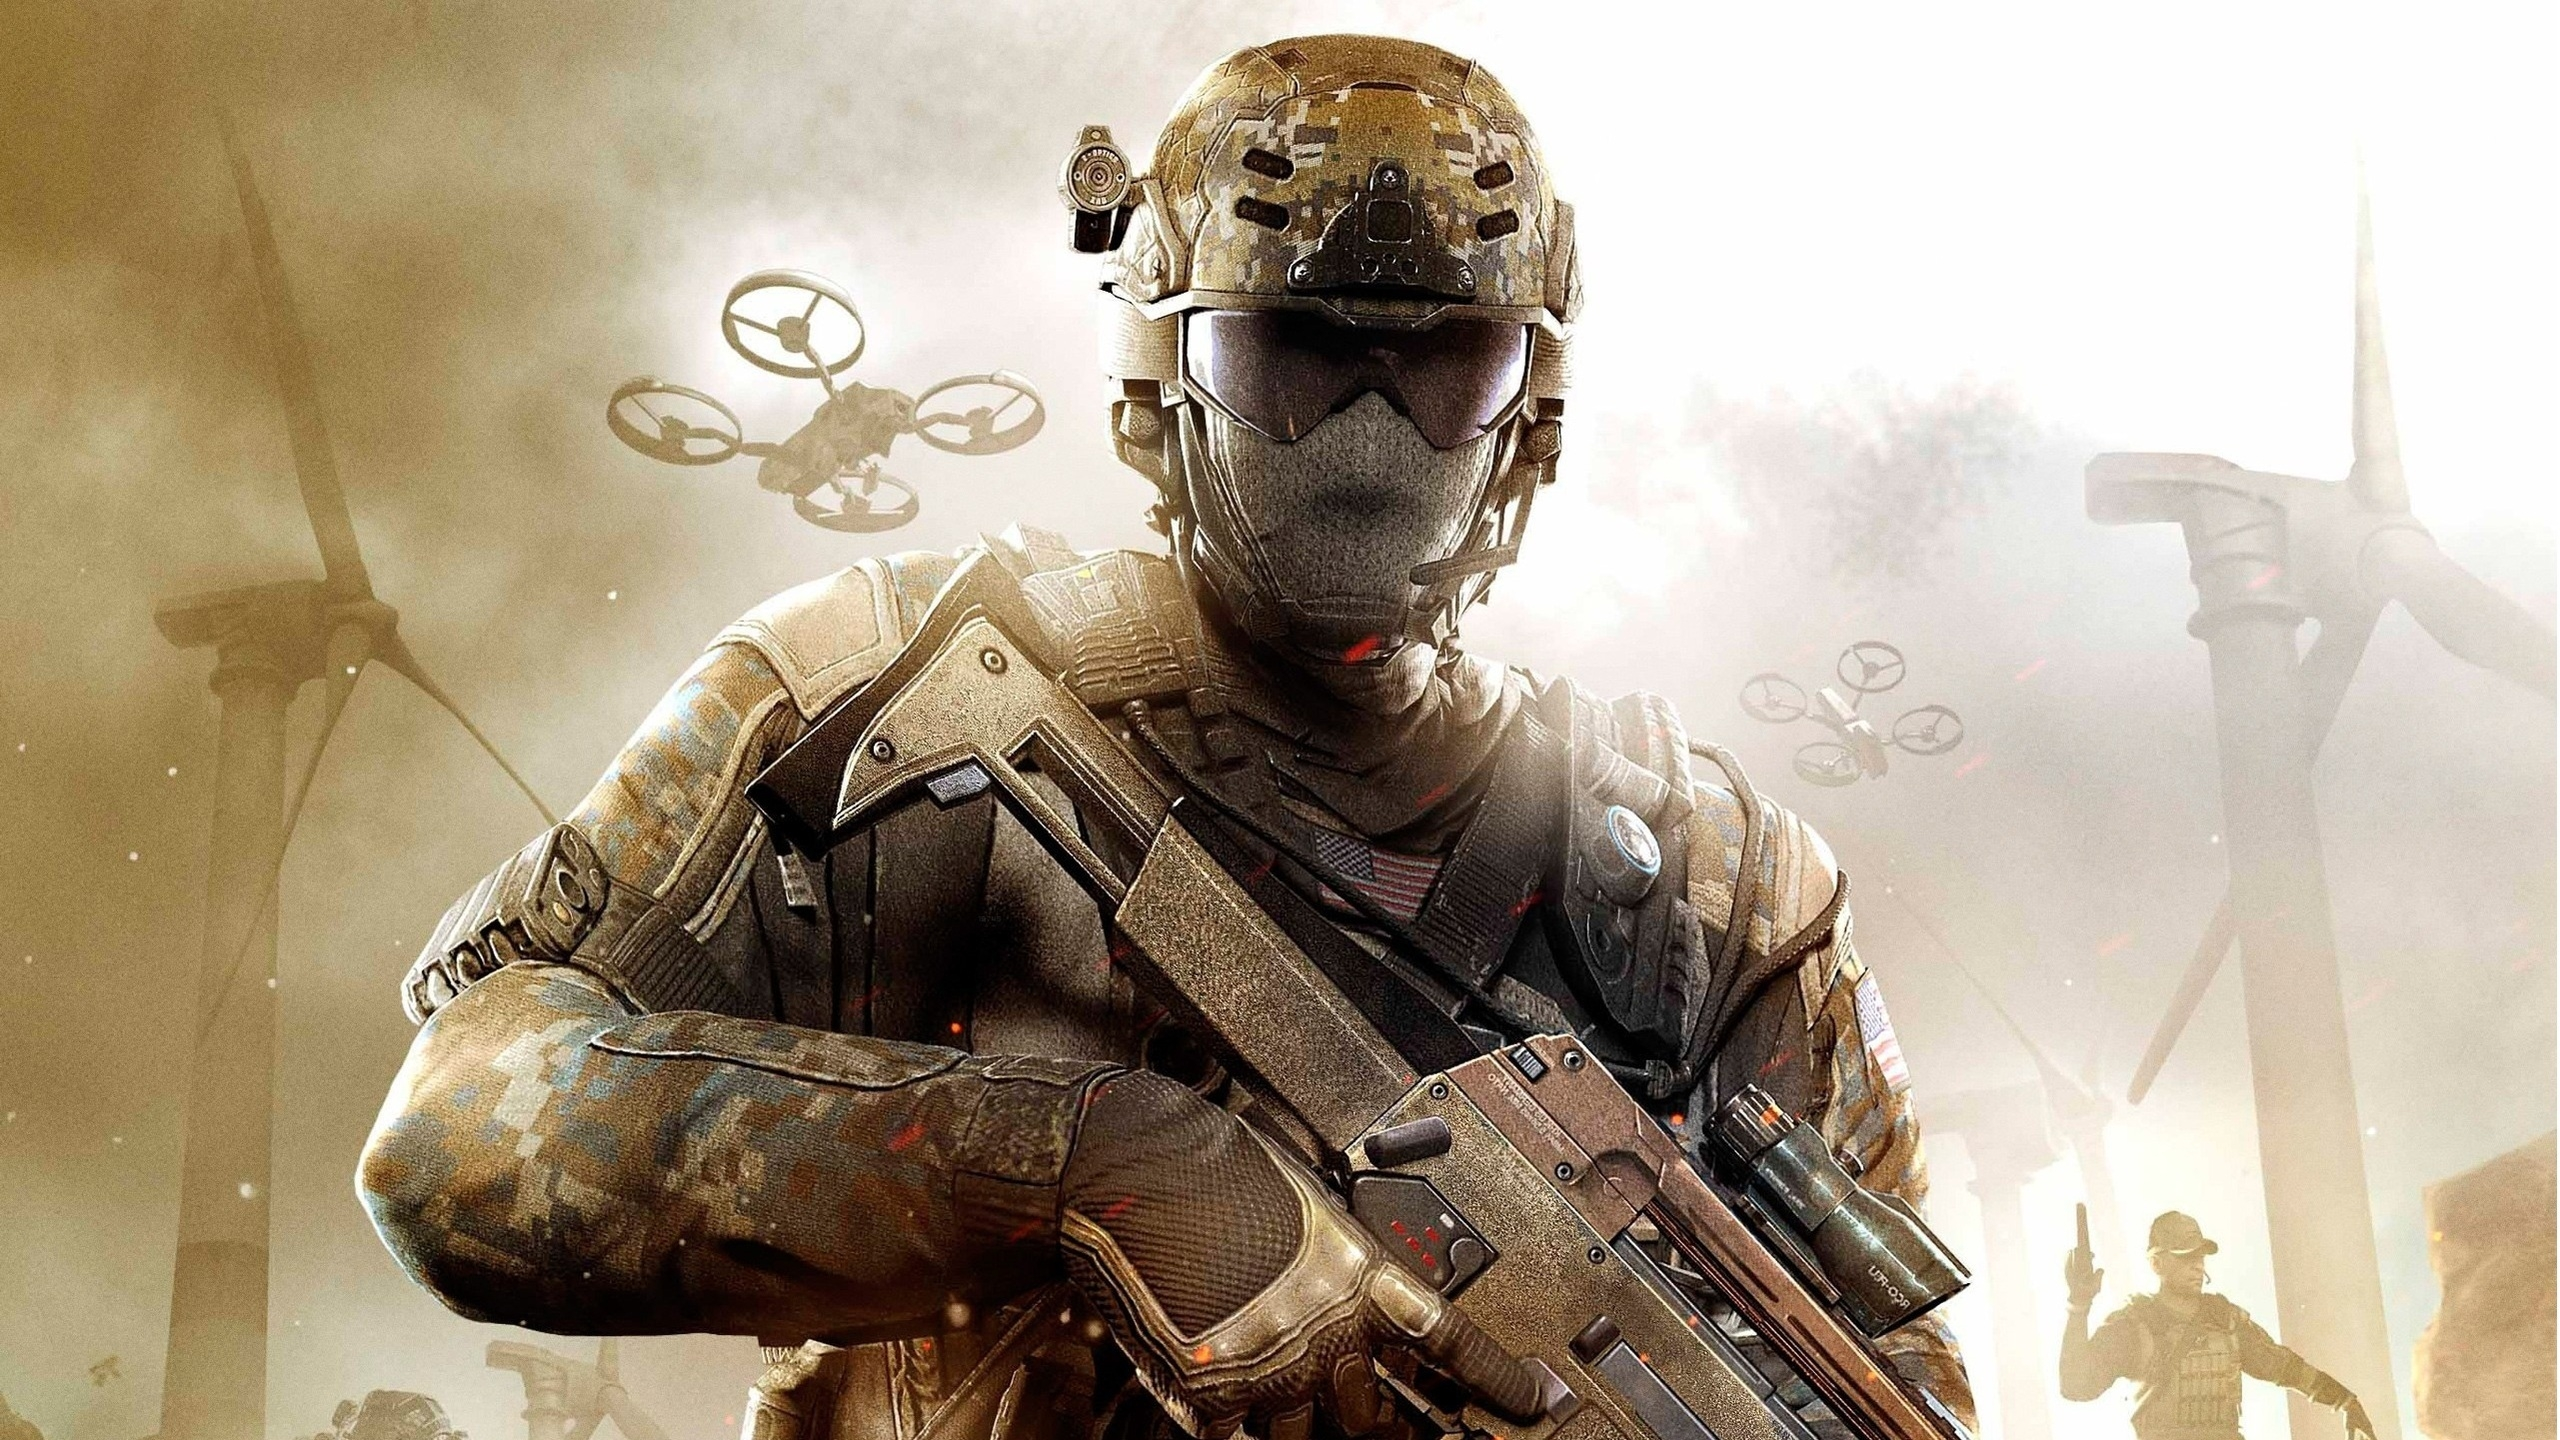 Call Of Duty Black Ops 2 Soldier 2560x1440 Hdtv Wallpaper